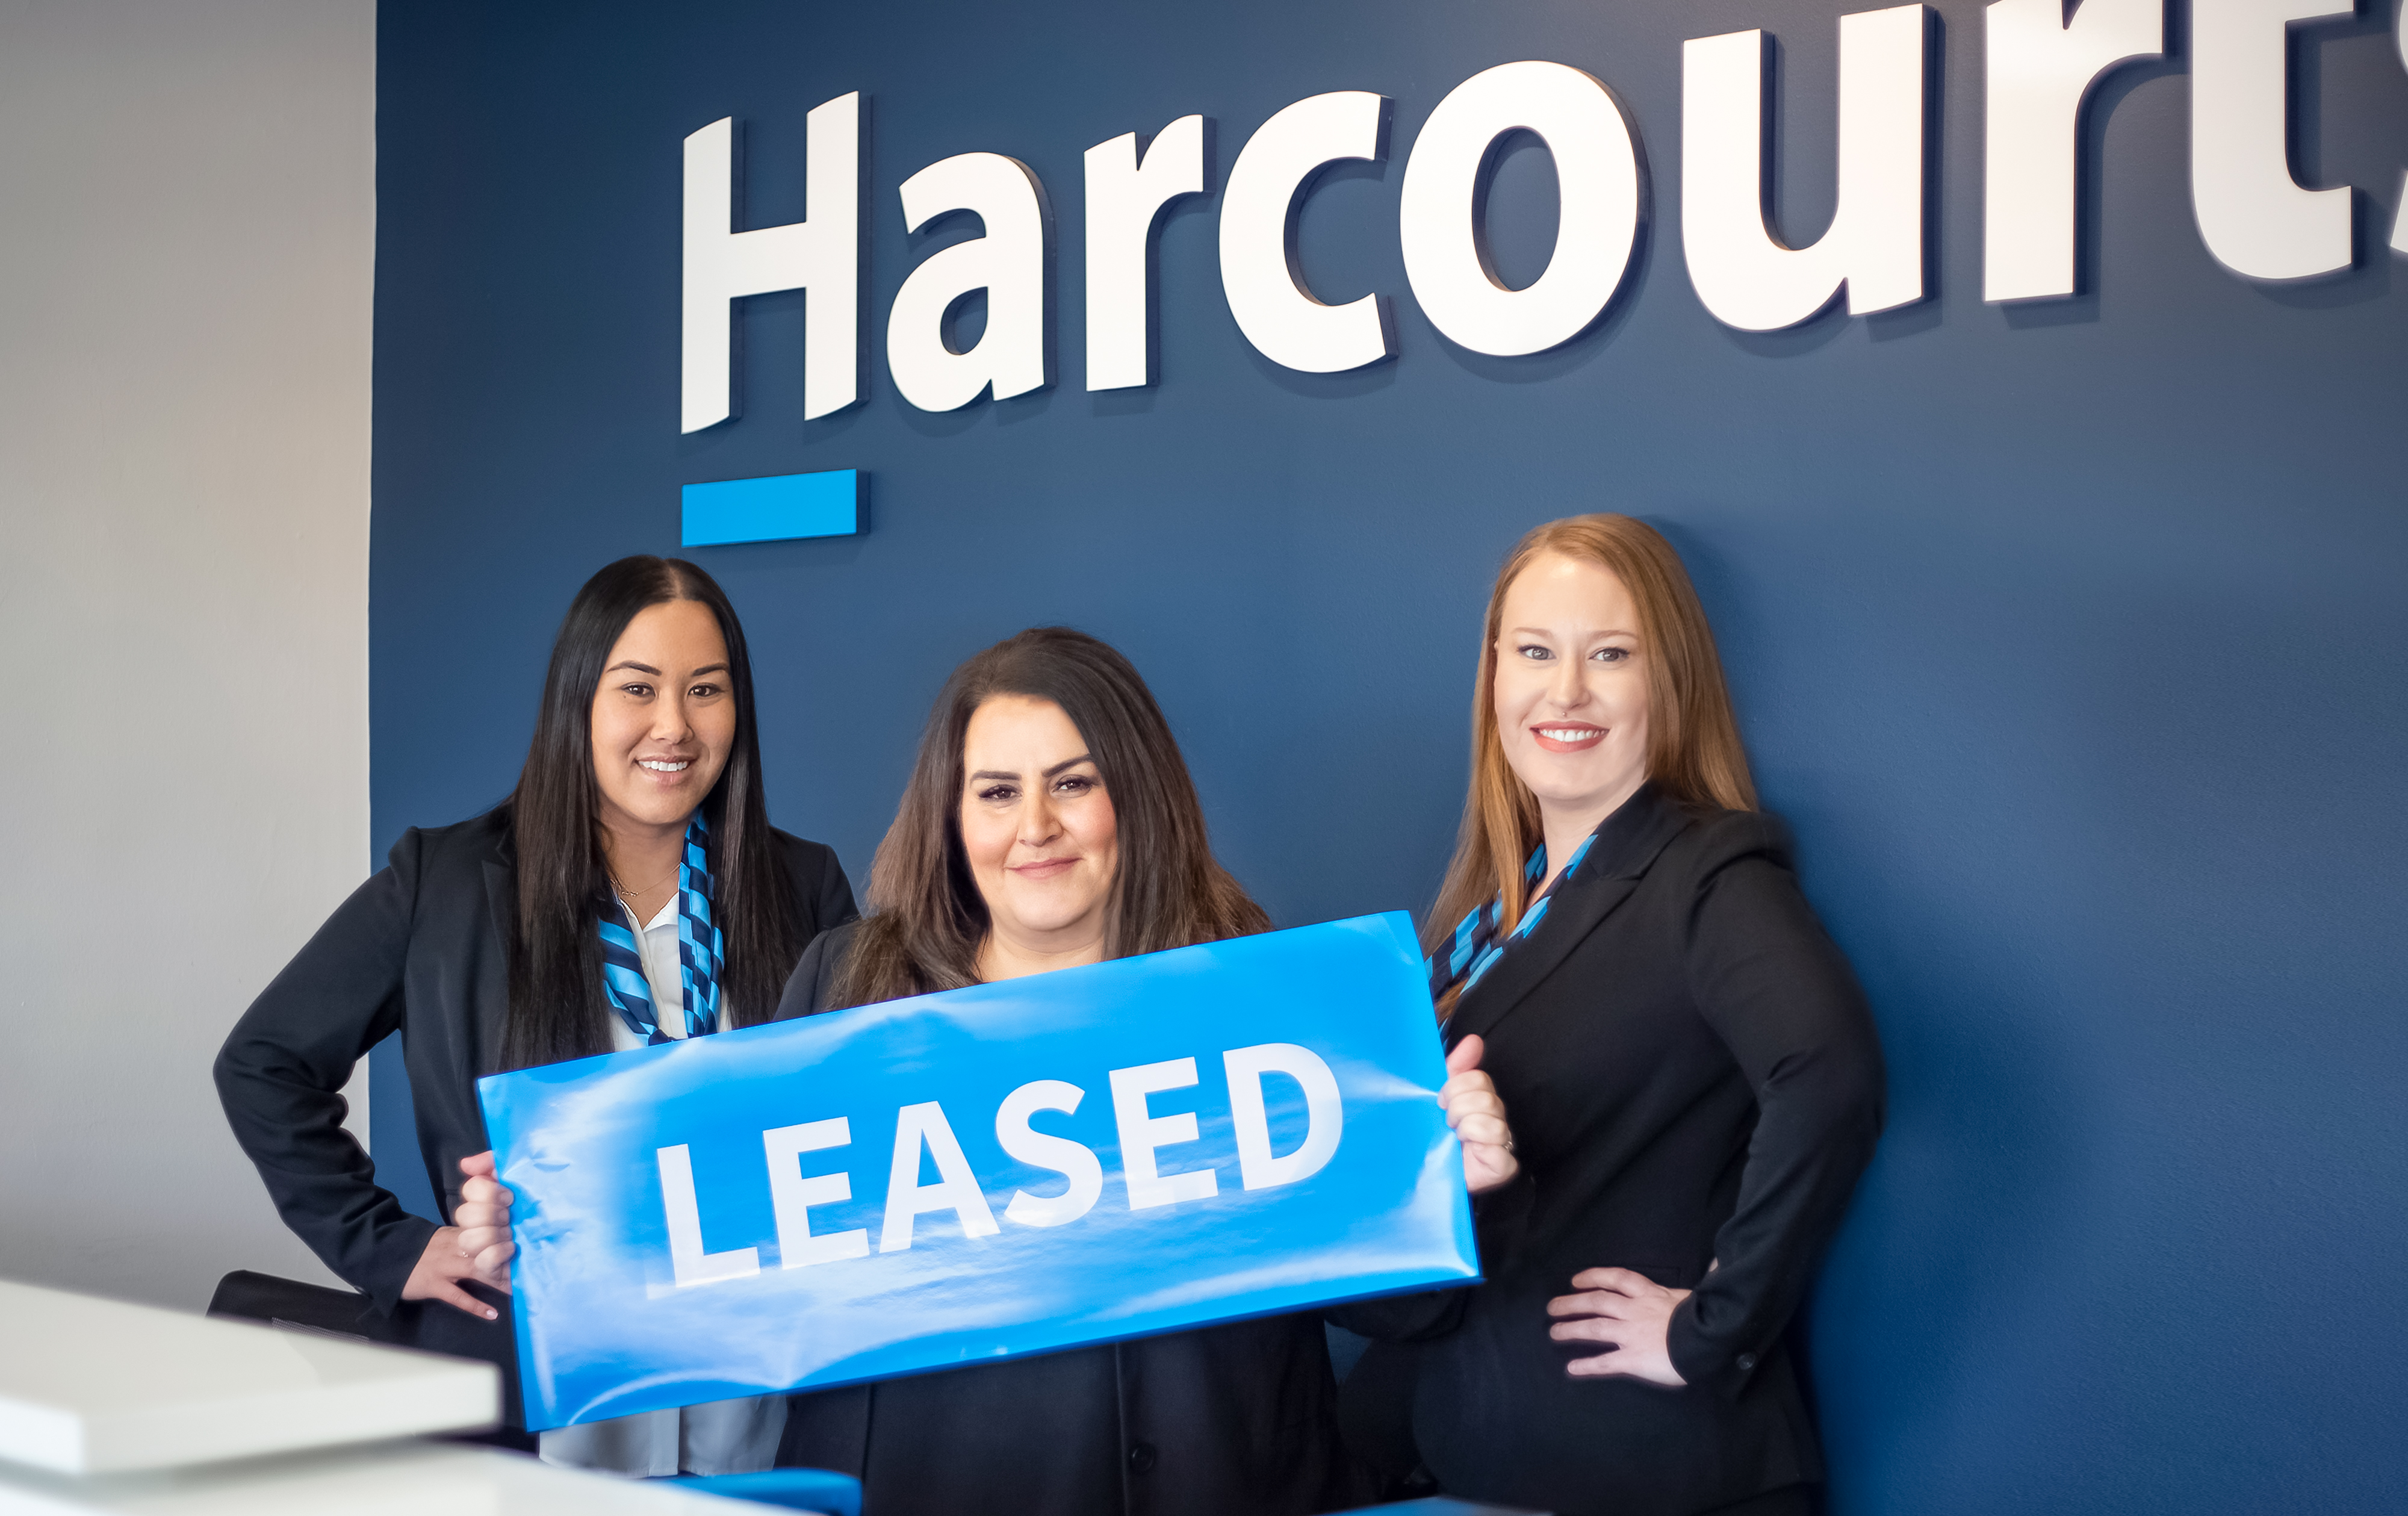 Harcourts West